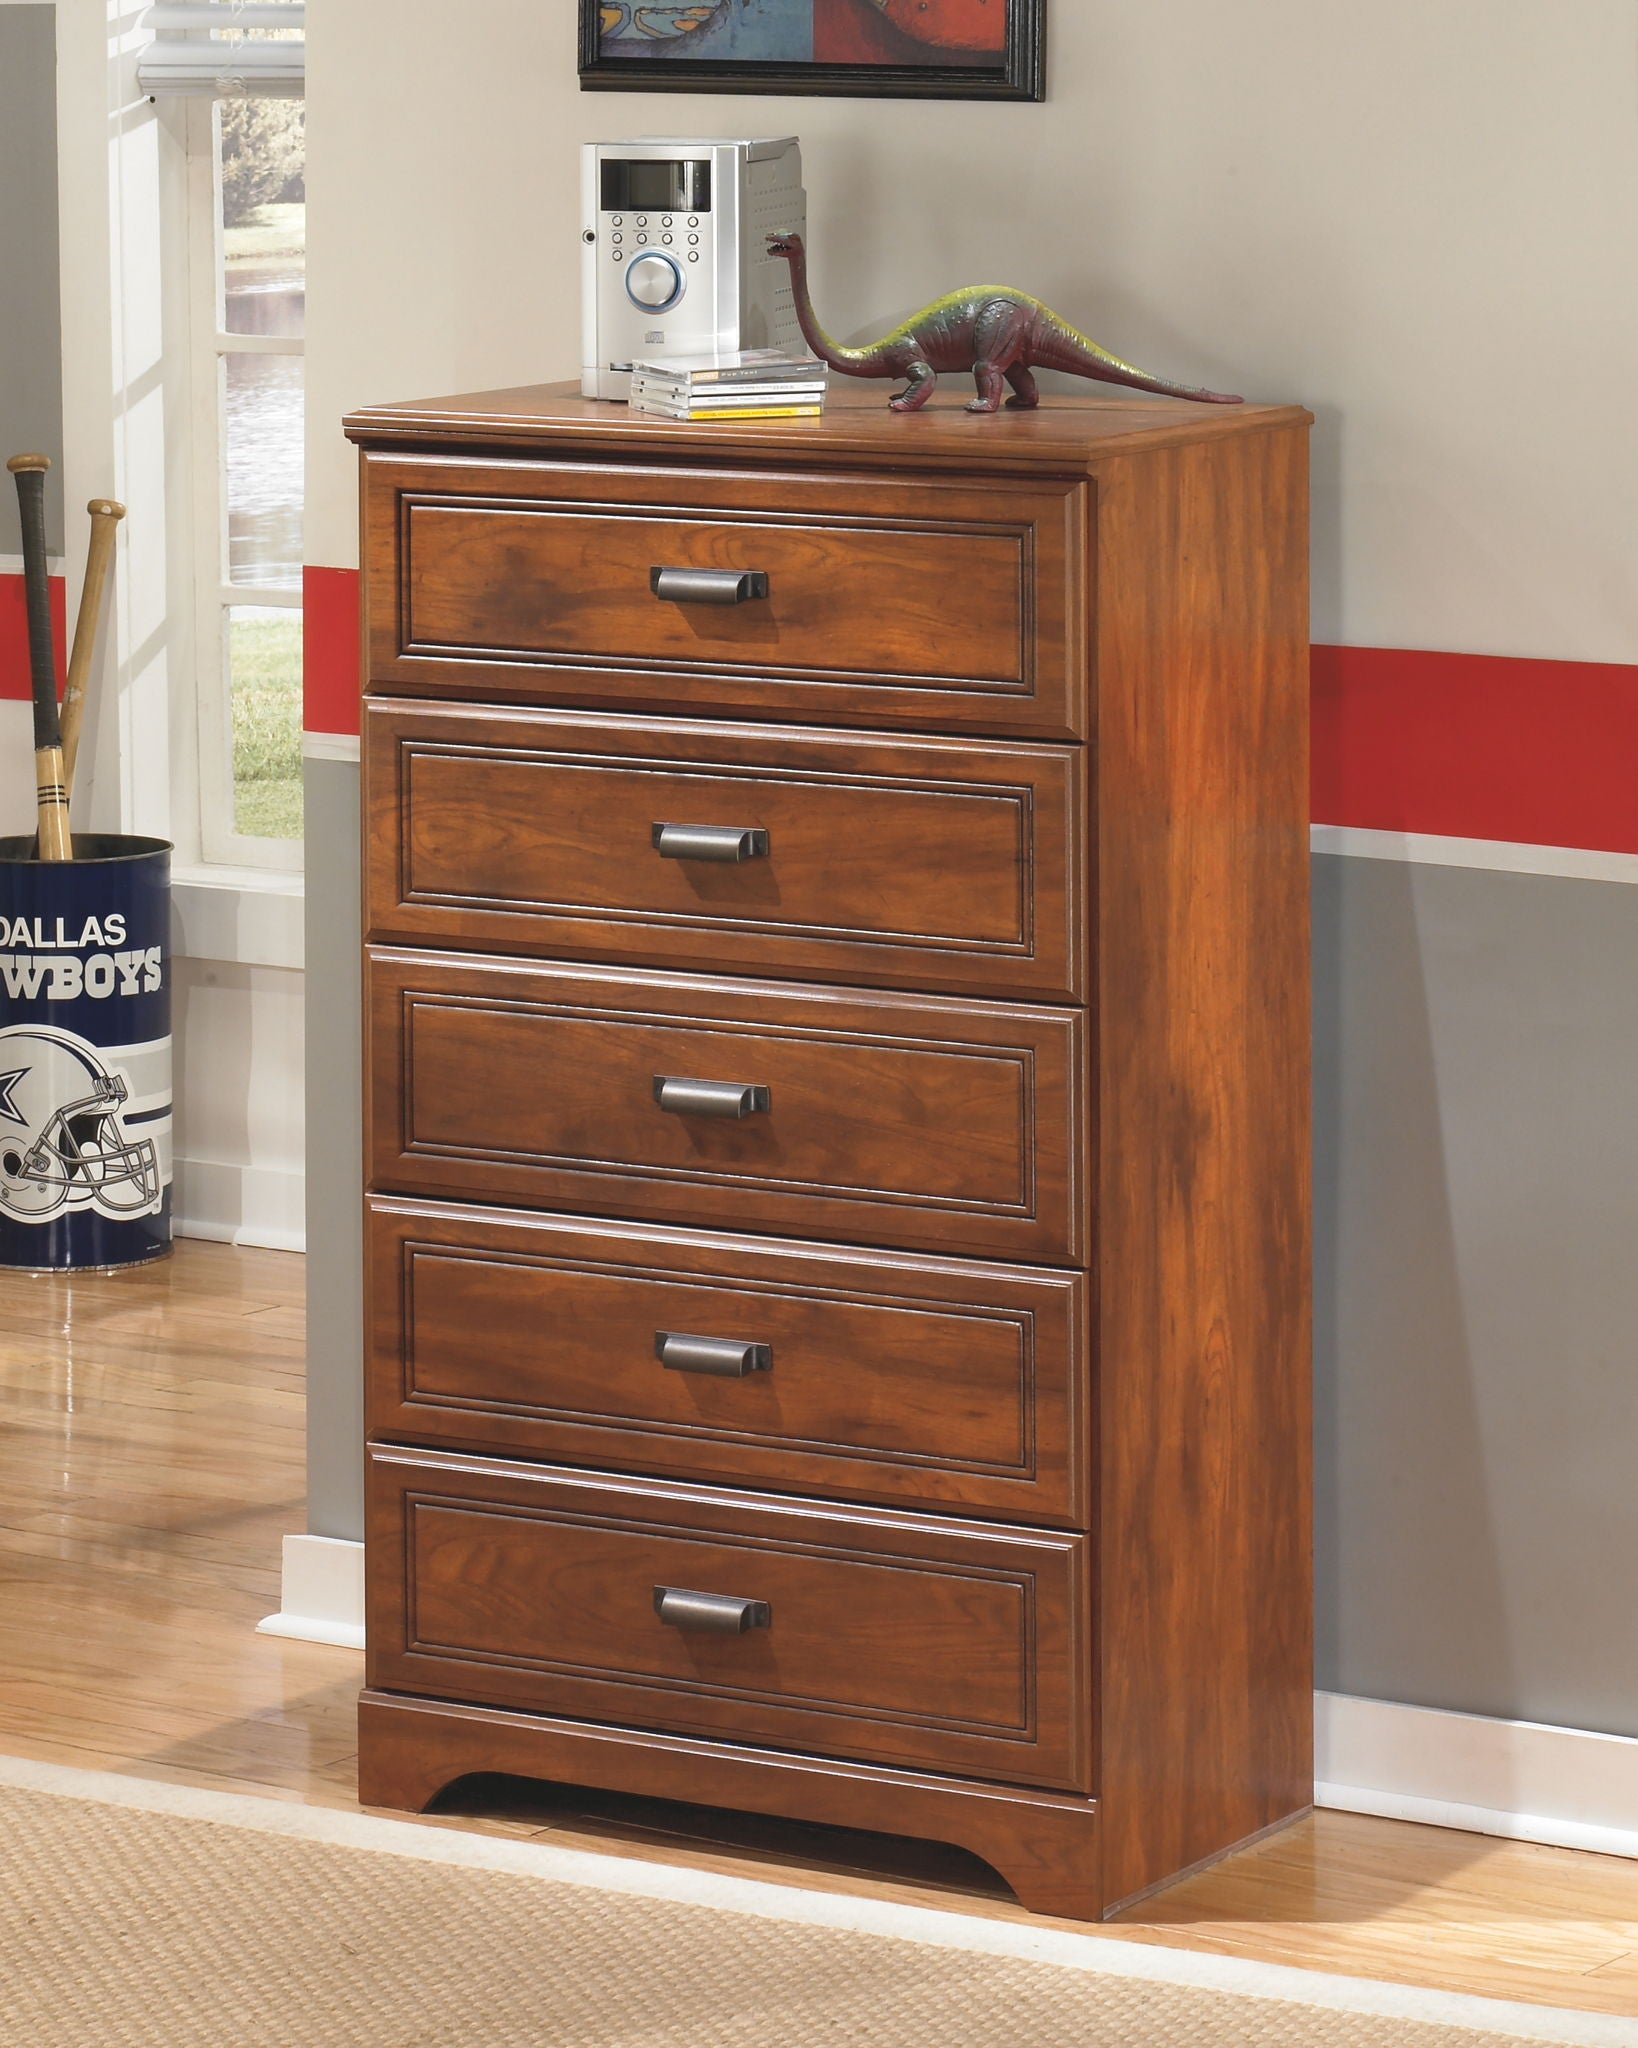 Barchan Chest of Drawers